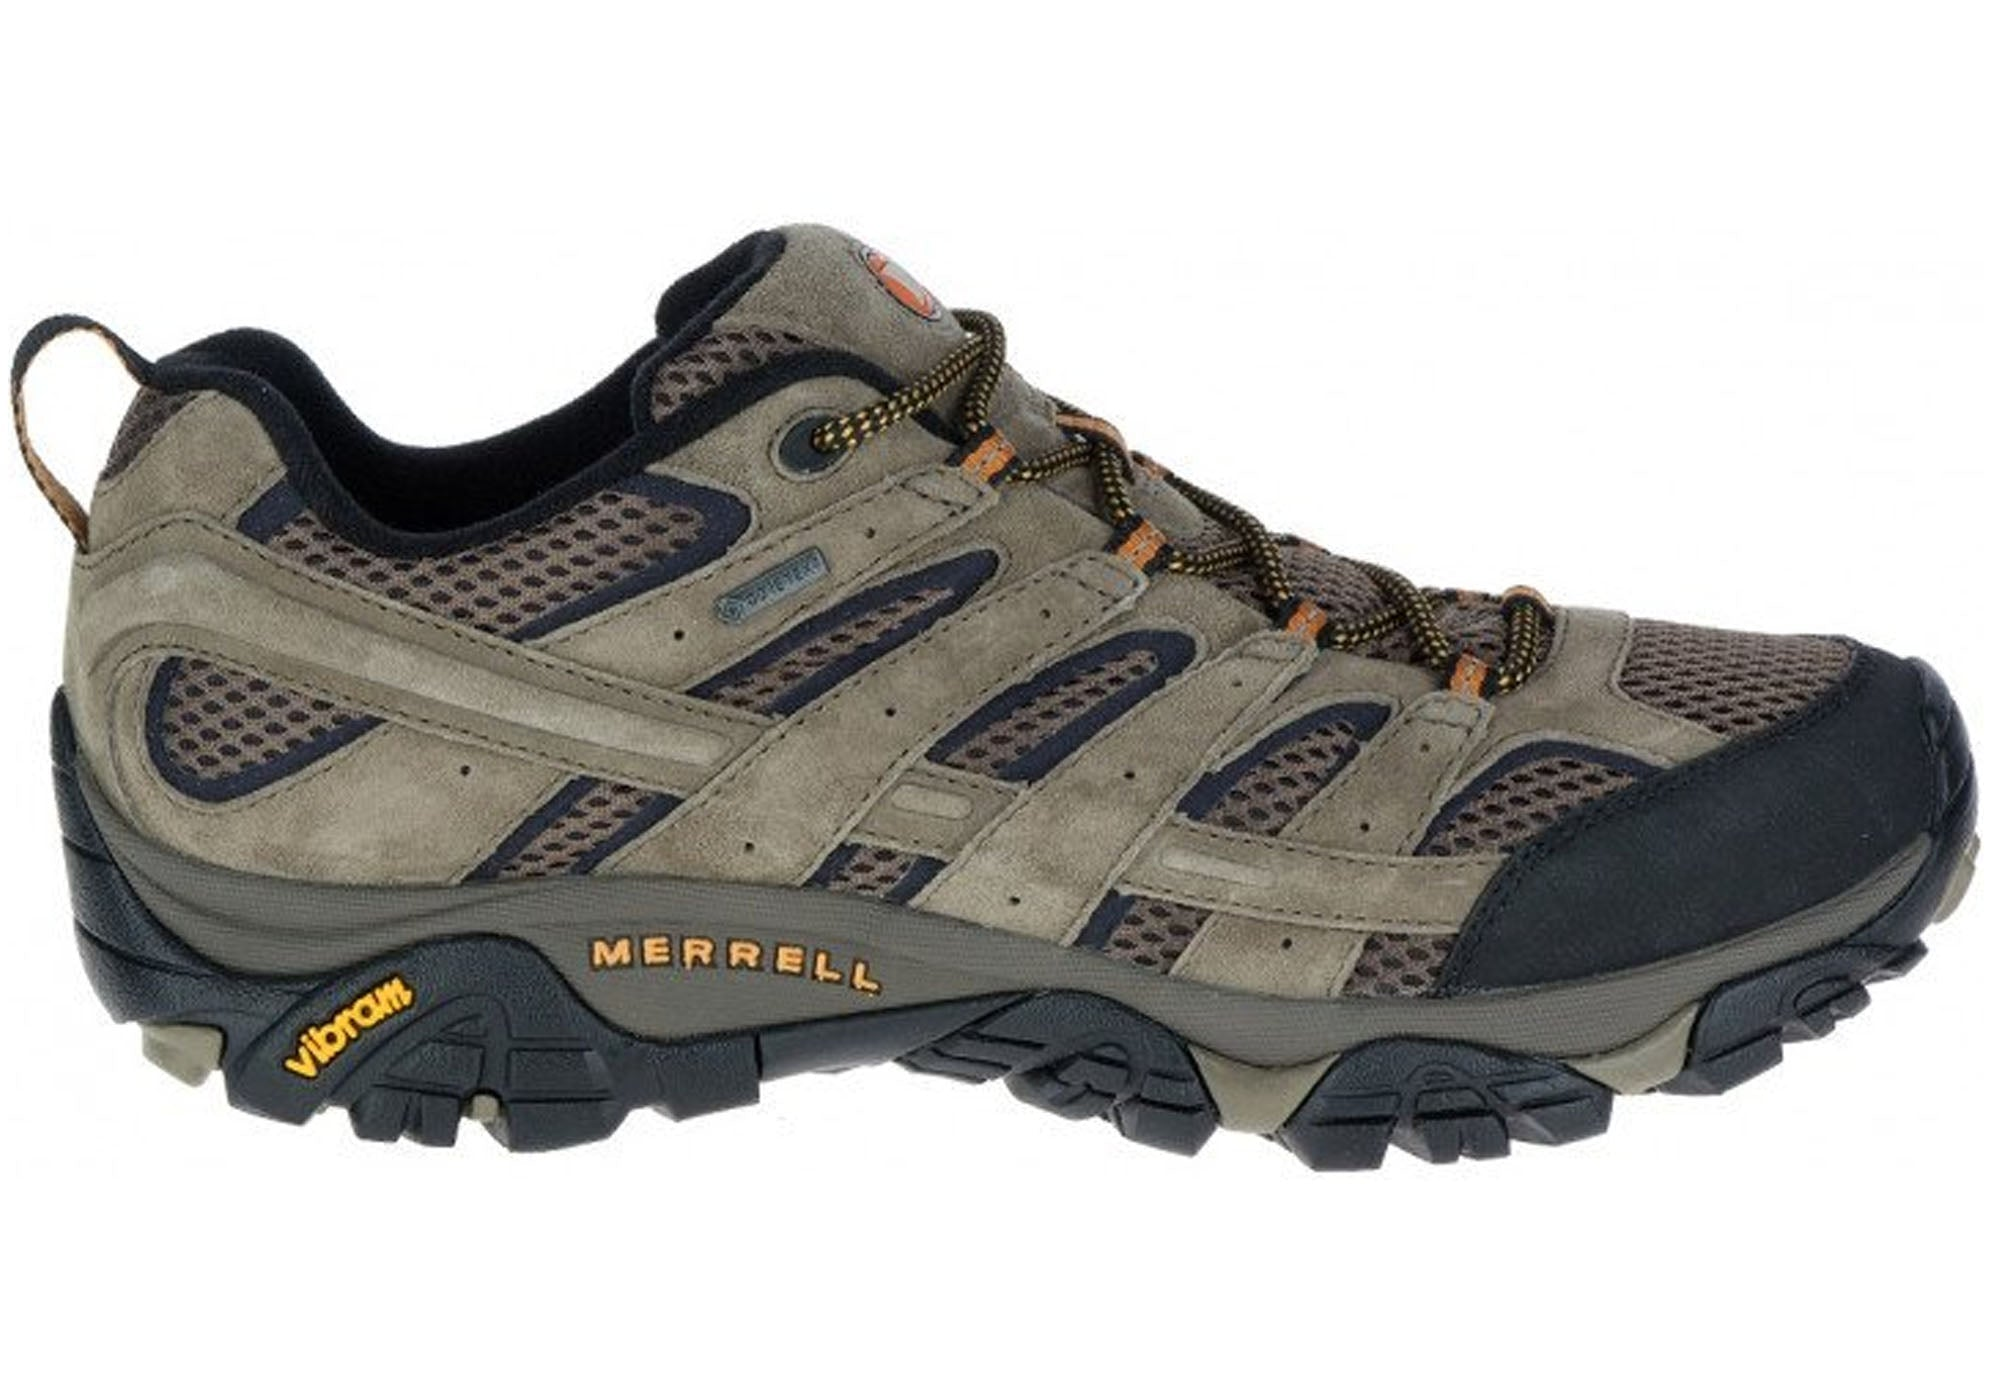 merrell moab gtx review 5.0